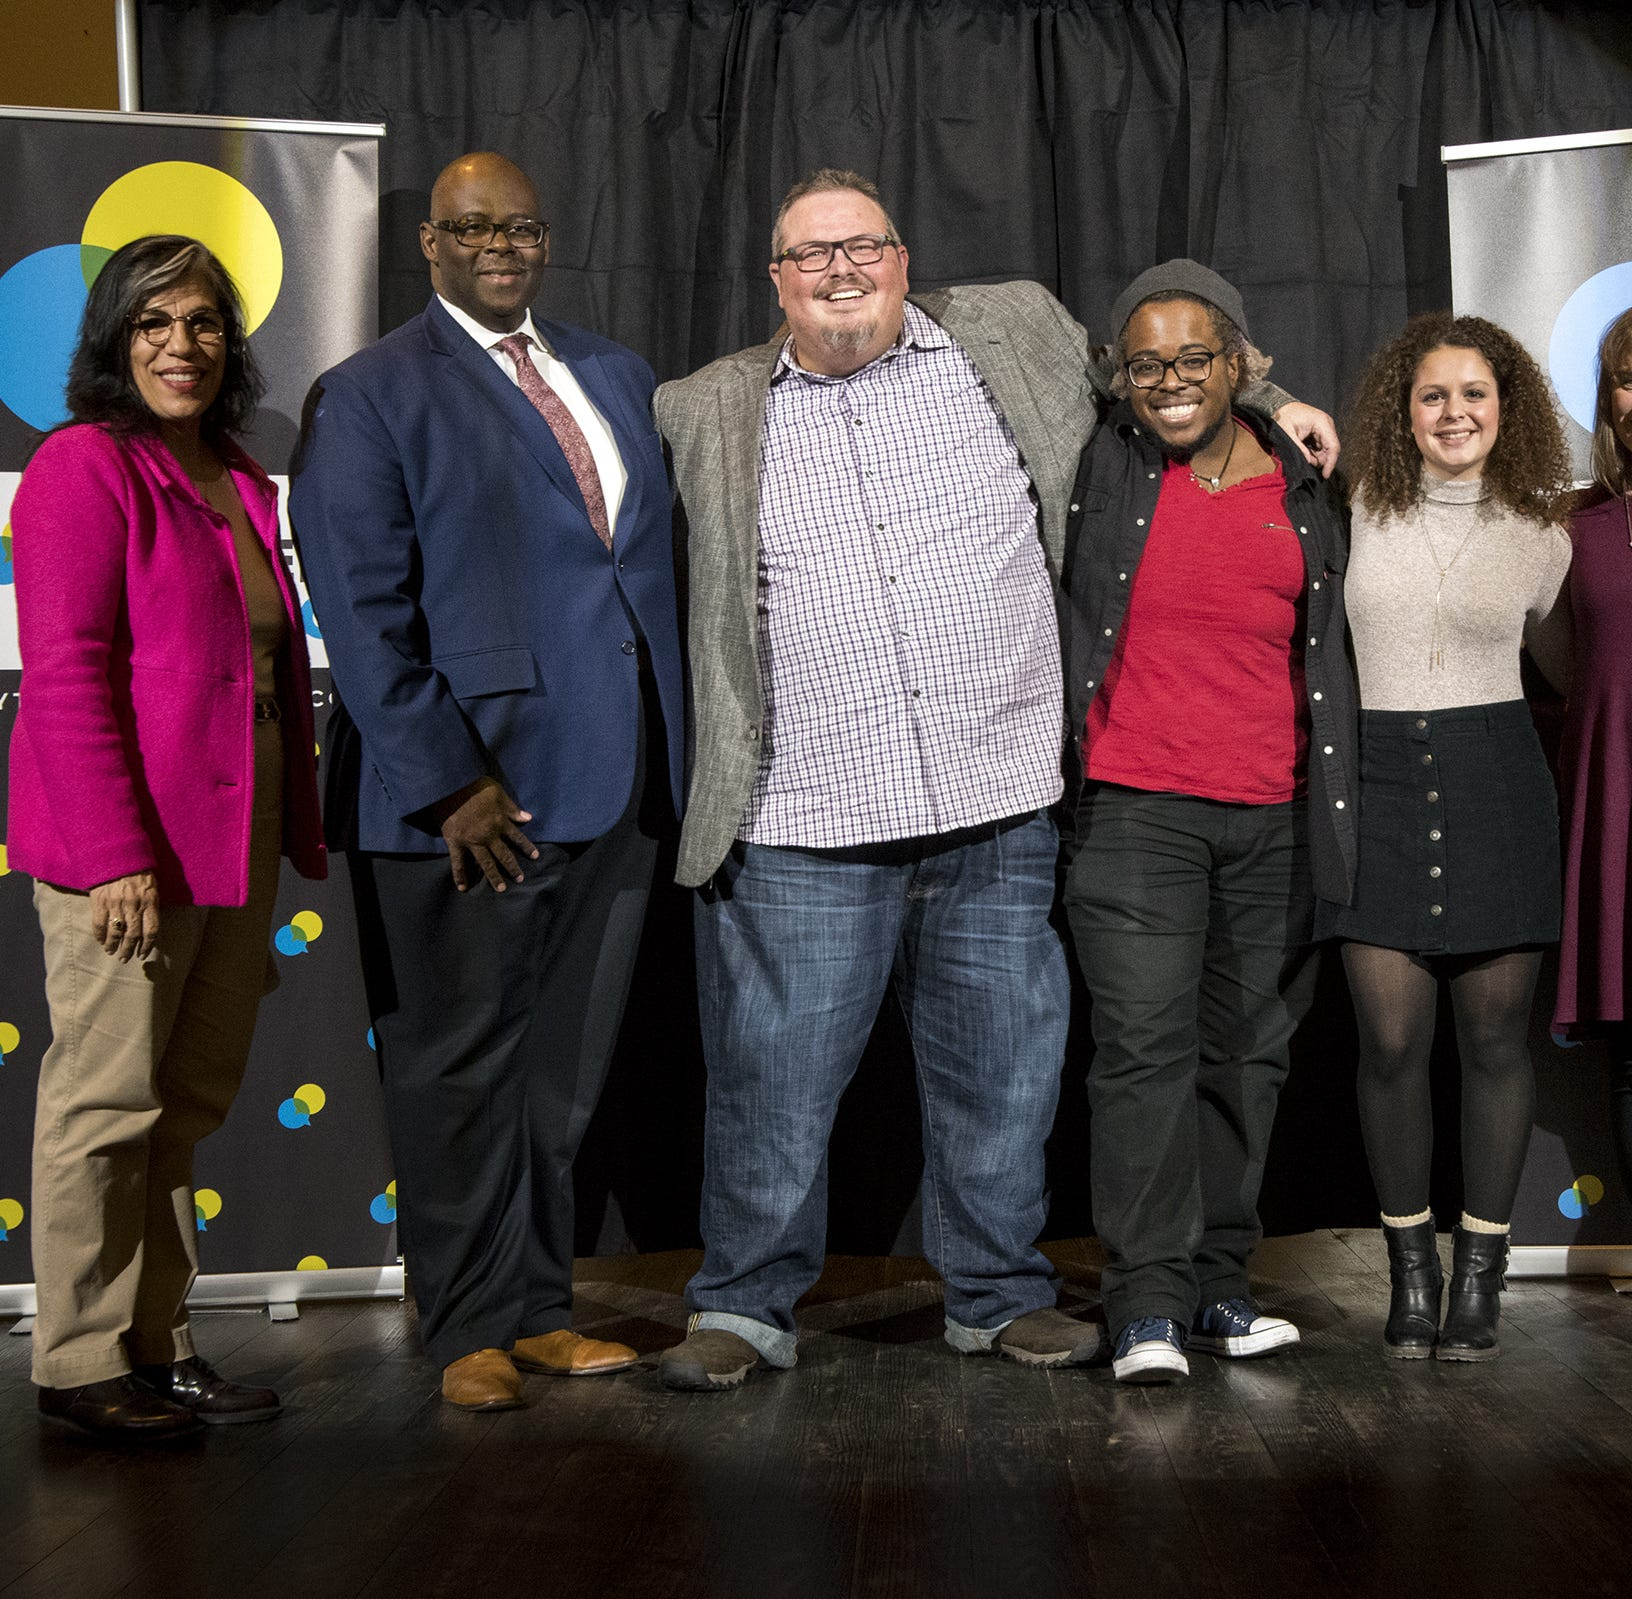 Cincy Storytellers wants to hear your story in 2019